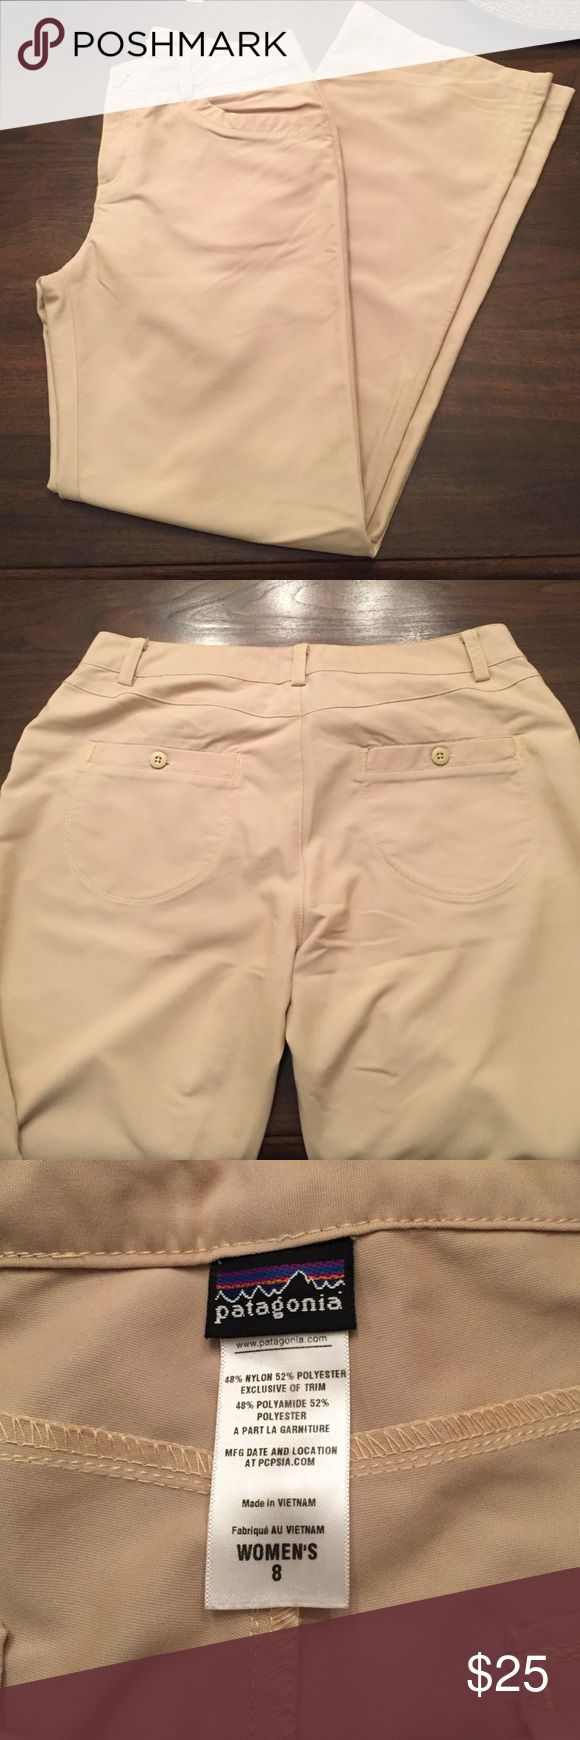 Patagonia Pants Like new, great for the outdoors. 48% nylon, 52% polyester Patagonia Pants